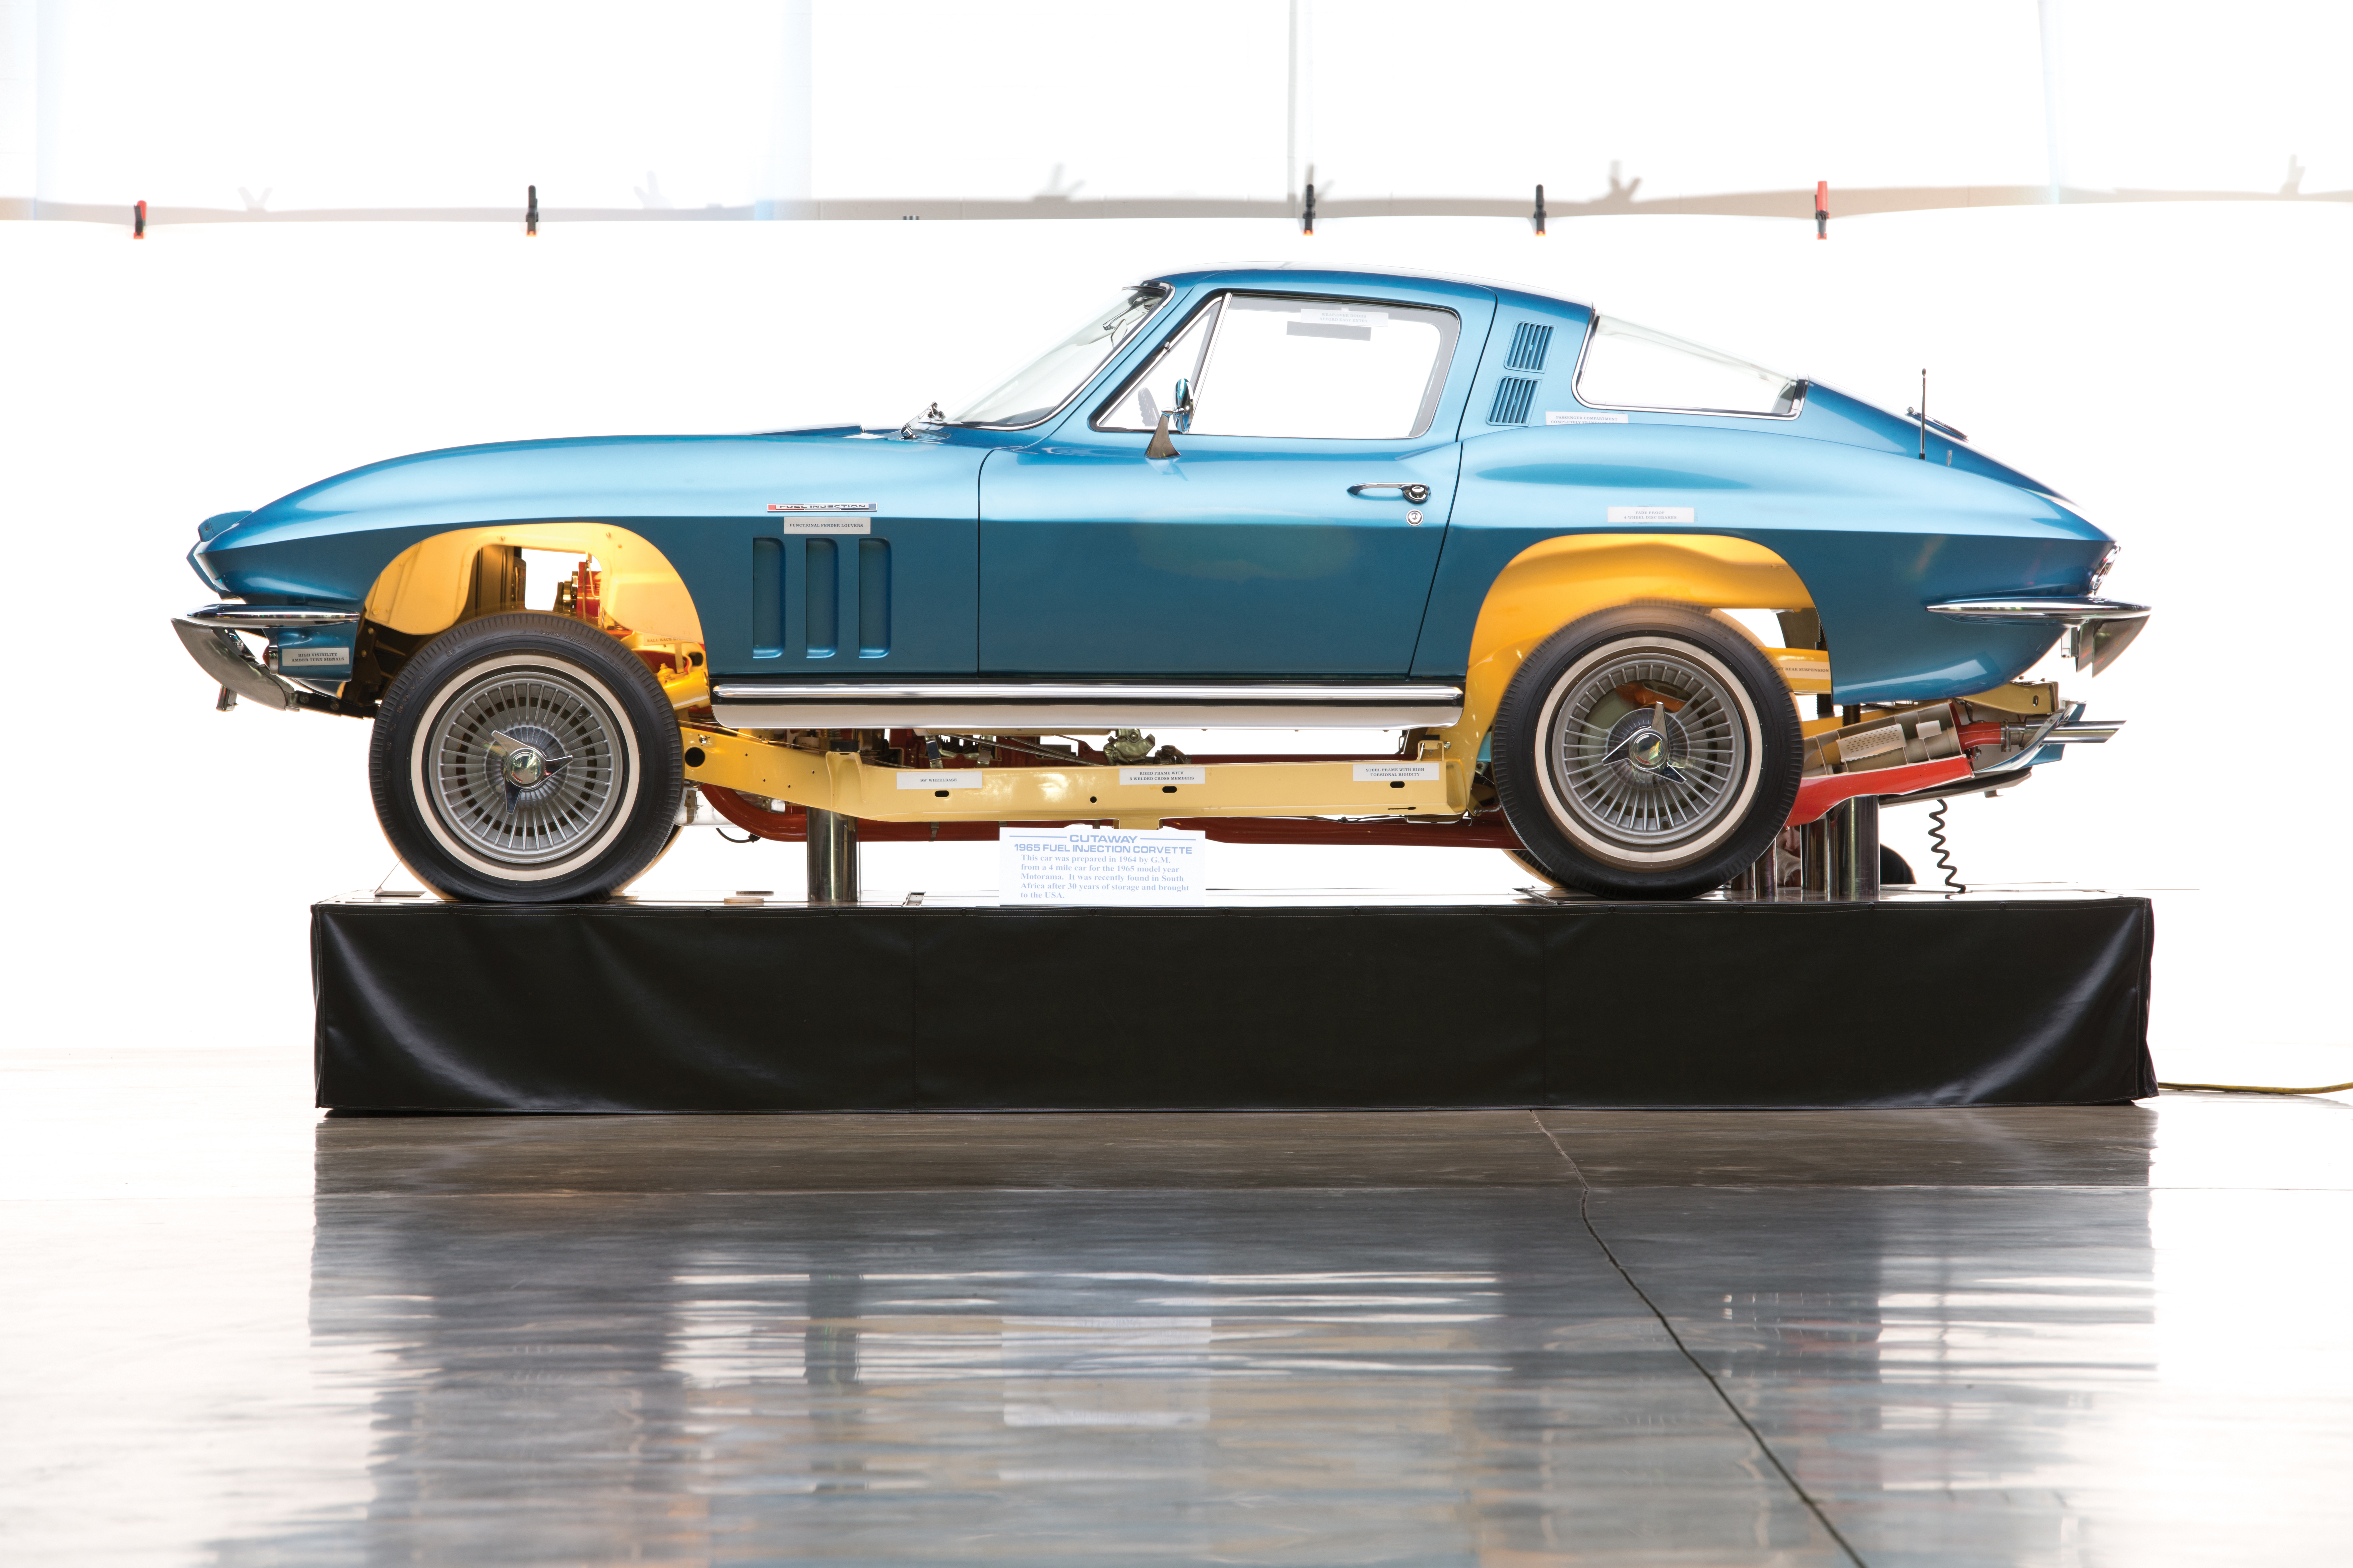 The 47th annual Barrett-Jackson Auction in Scottsdale, held in January 2018, brought in total auction sales of more than $116.7 million.